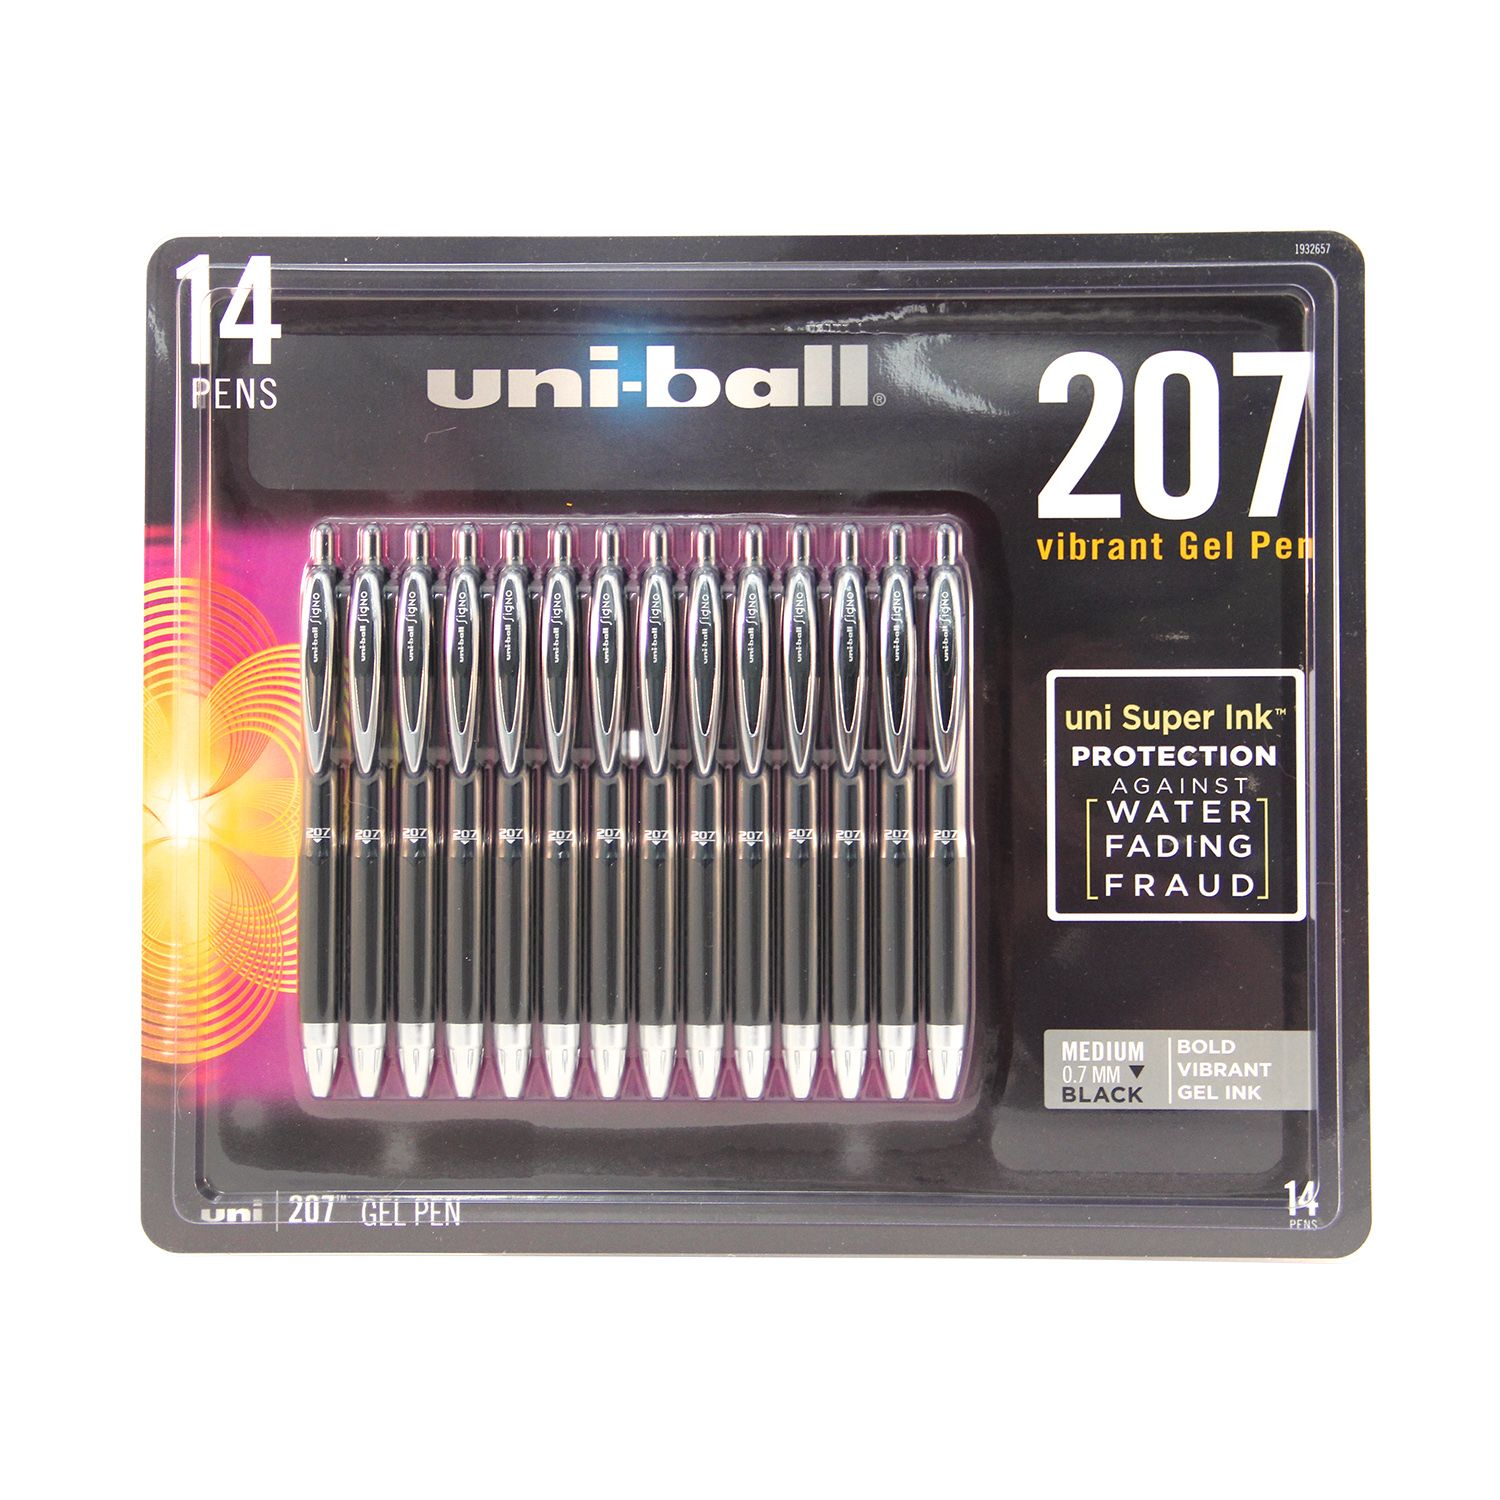 uni-ball 207 Retractable Roller Ball Gel Pen, Medium Point, Black, 14ct.